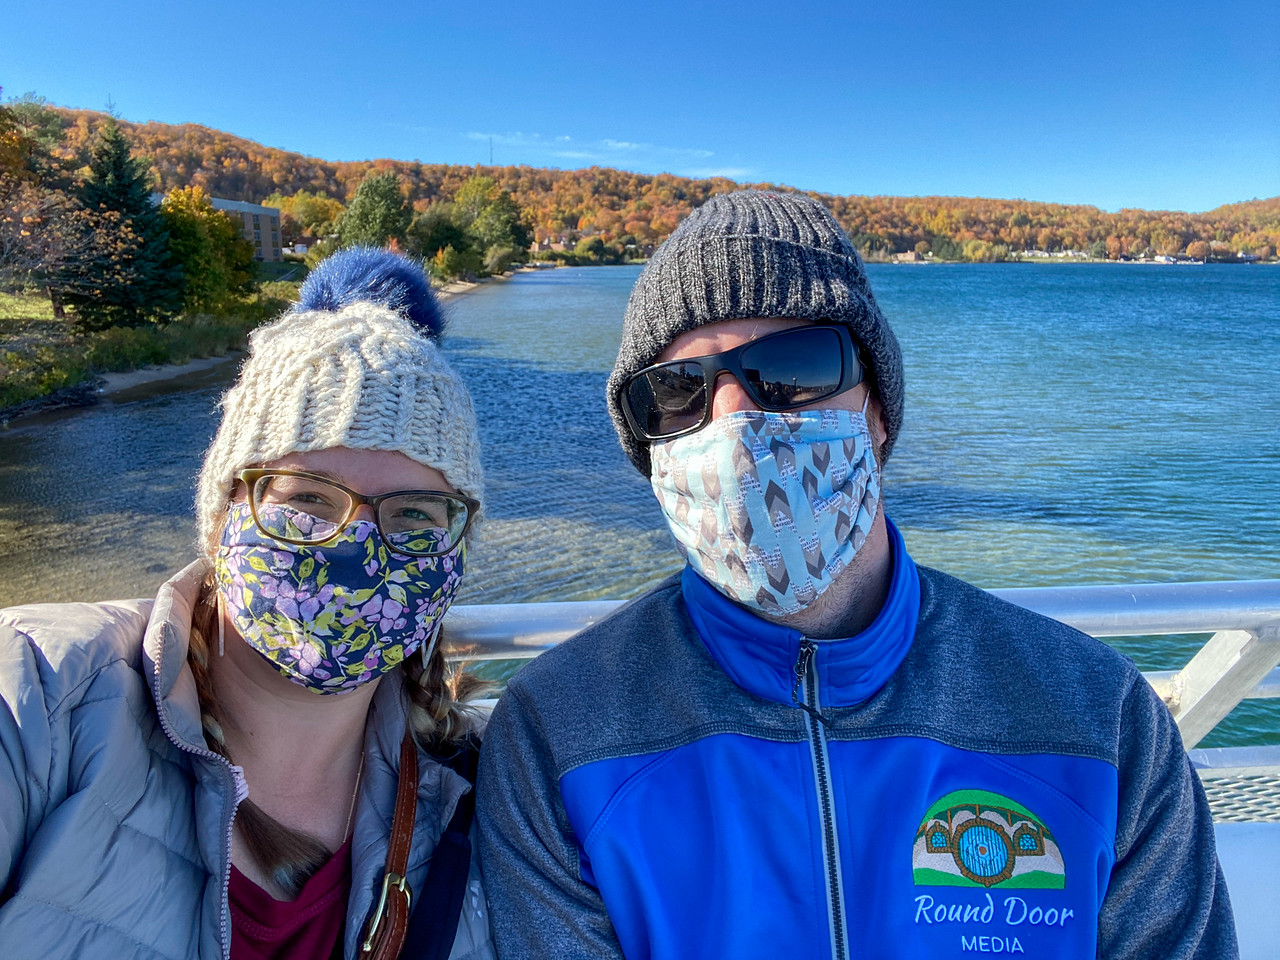 Amanda and Elliot in masks and beanies on a cruise boat